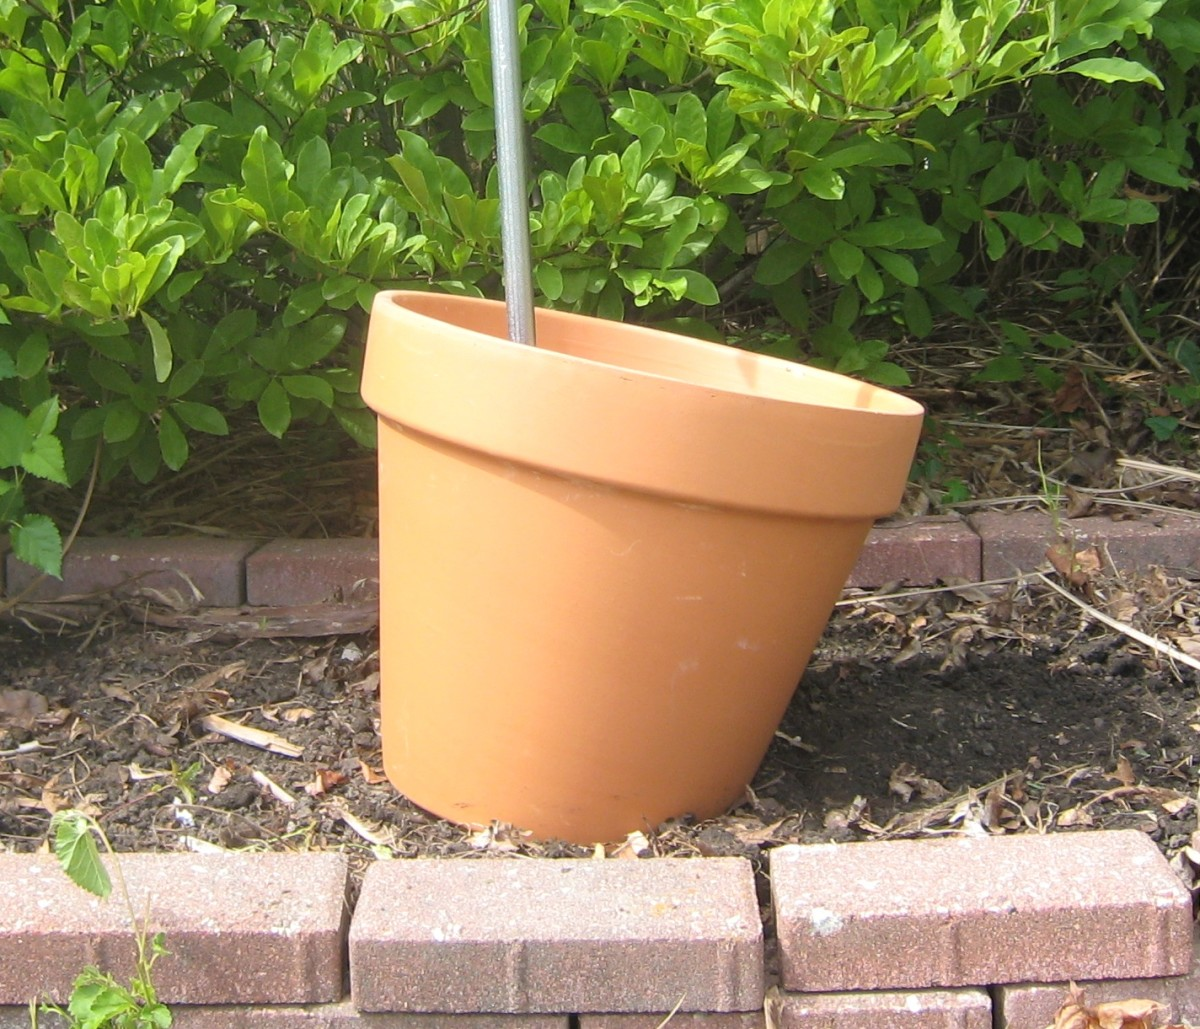 Note that the rod is straight, but the pot is tilted.  That is because of the trench that was dug into the ground.